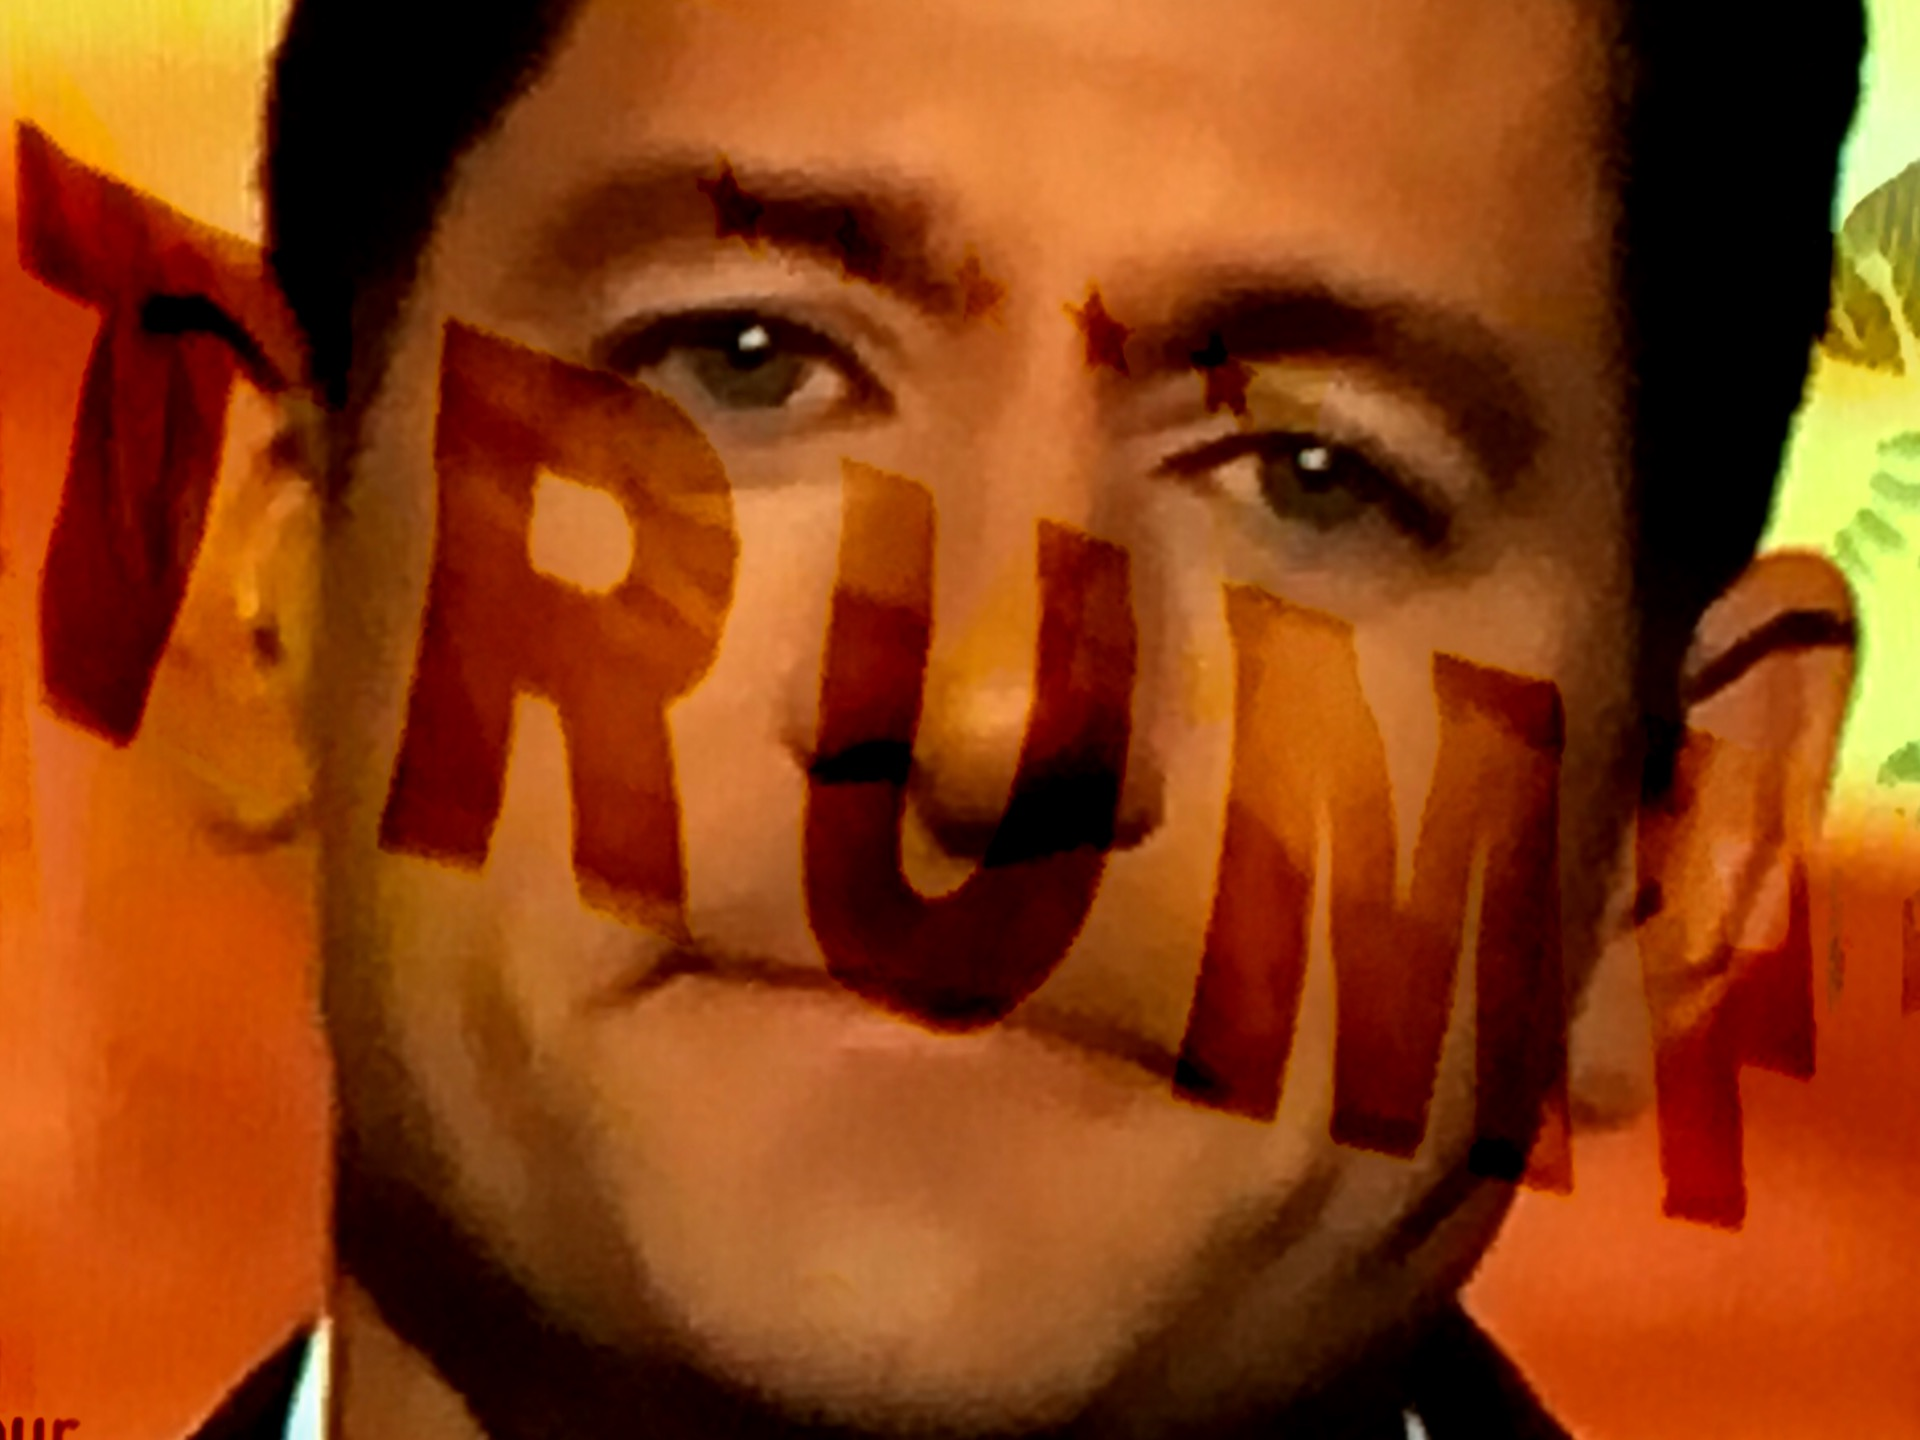 Paul Ryan at the RNC. (Composite image by Biz Herman/GroundTruth)